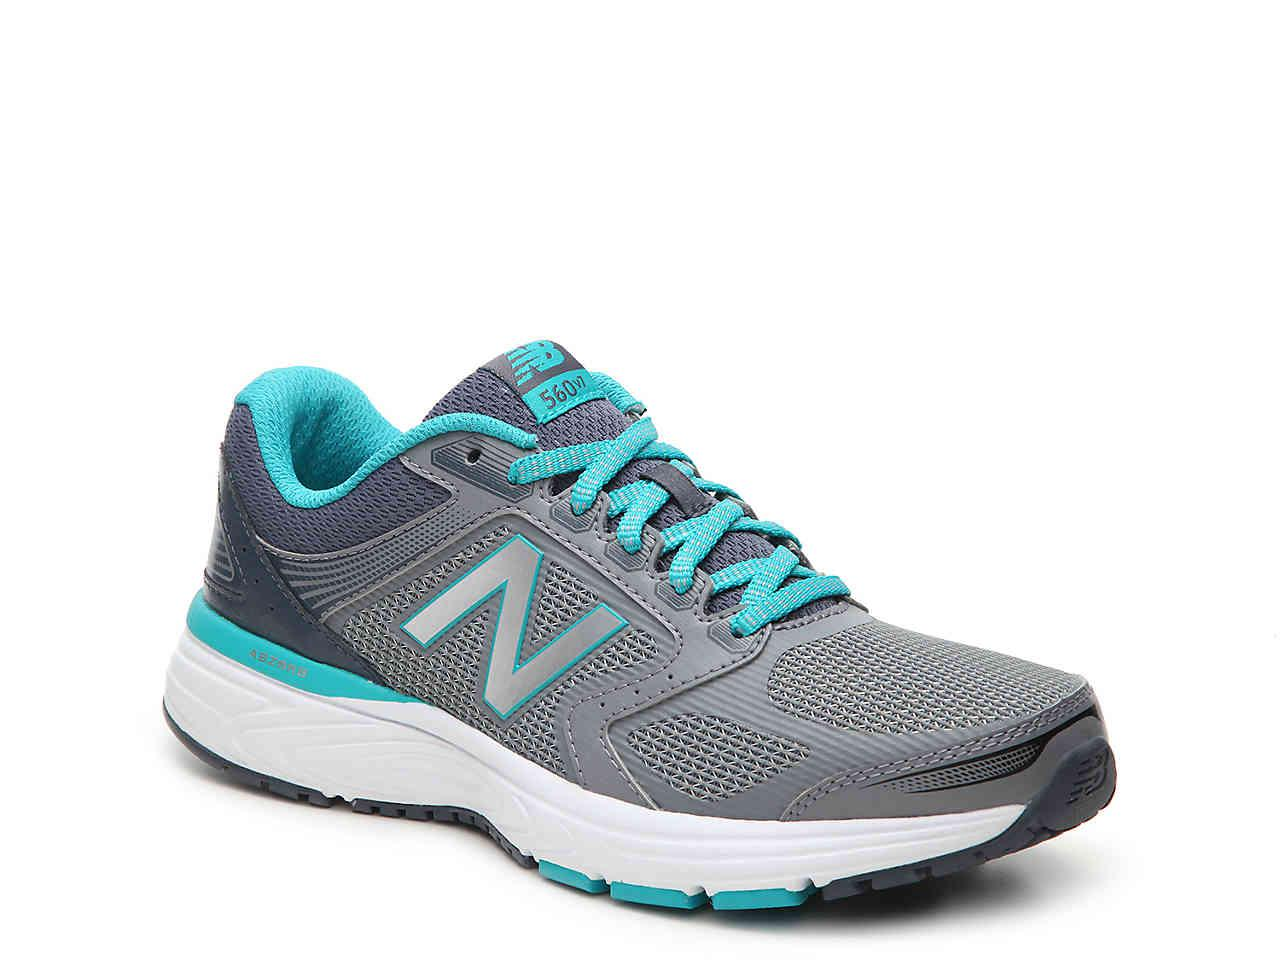 New Balance 560 V7 Running Shoe in Grey/Teal (Gray) - Lyst